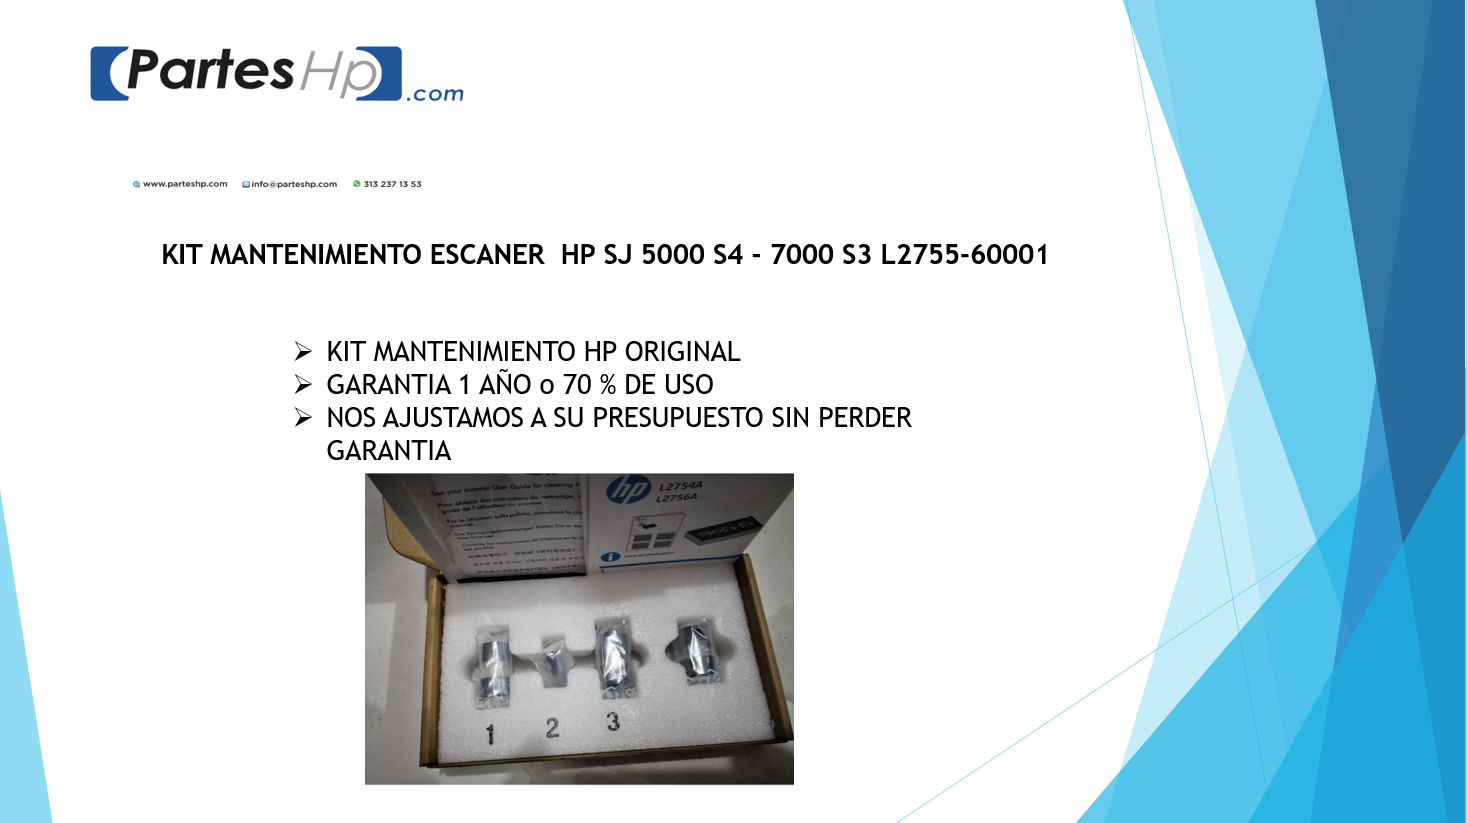 Kit Mantenimiento Escaner SJ 5000 S4 7000 S3